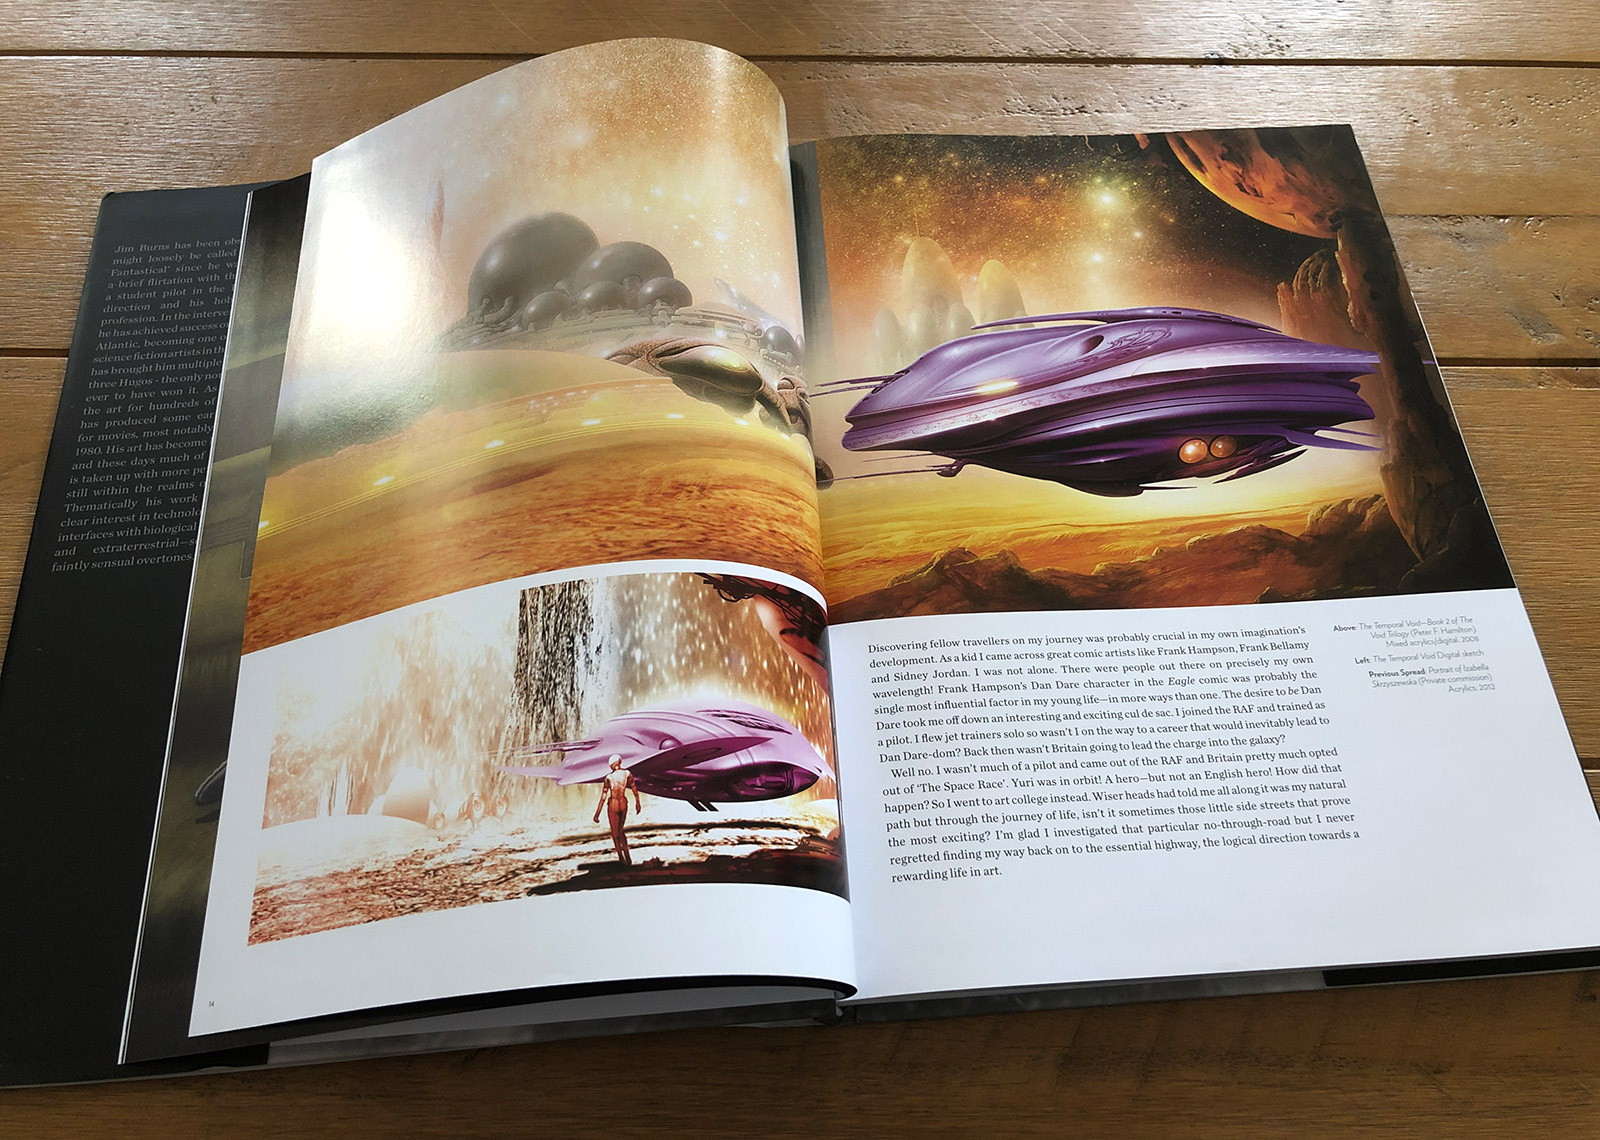 The Art of Jim Burns: Hyperluminal Book Review